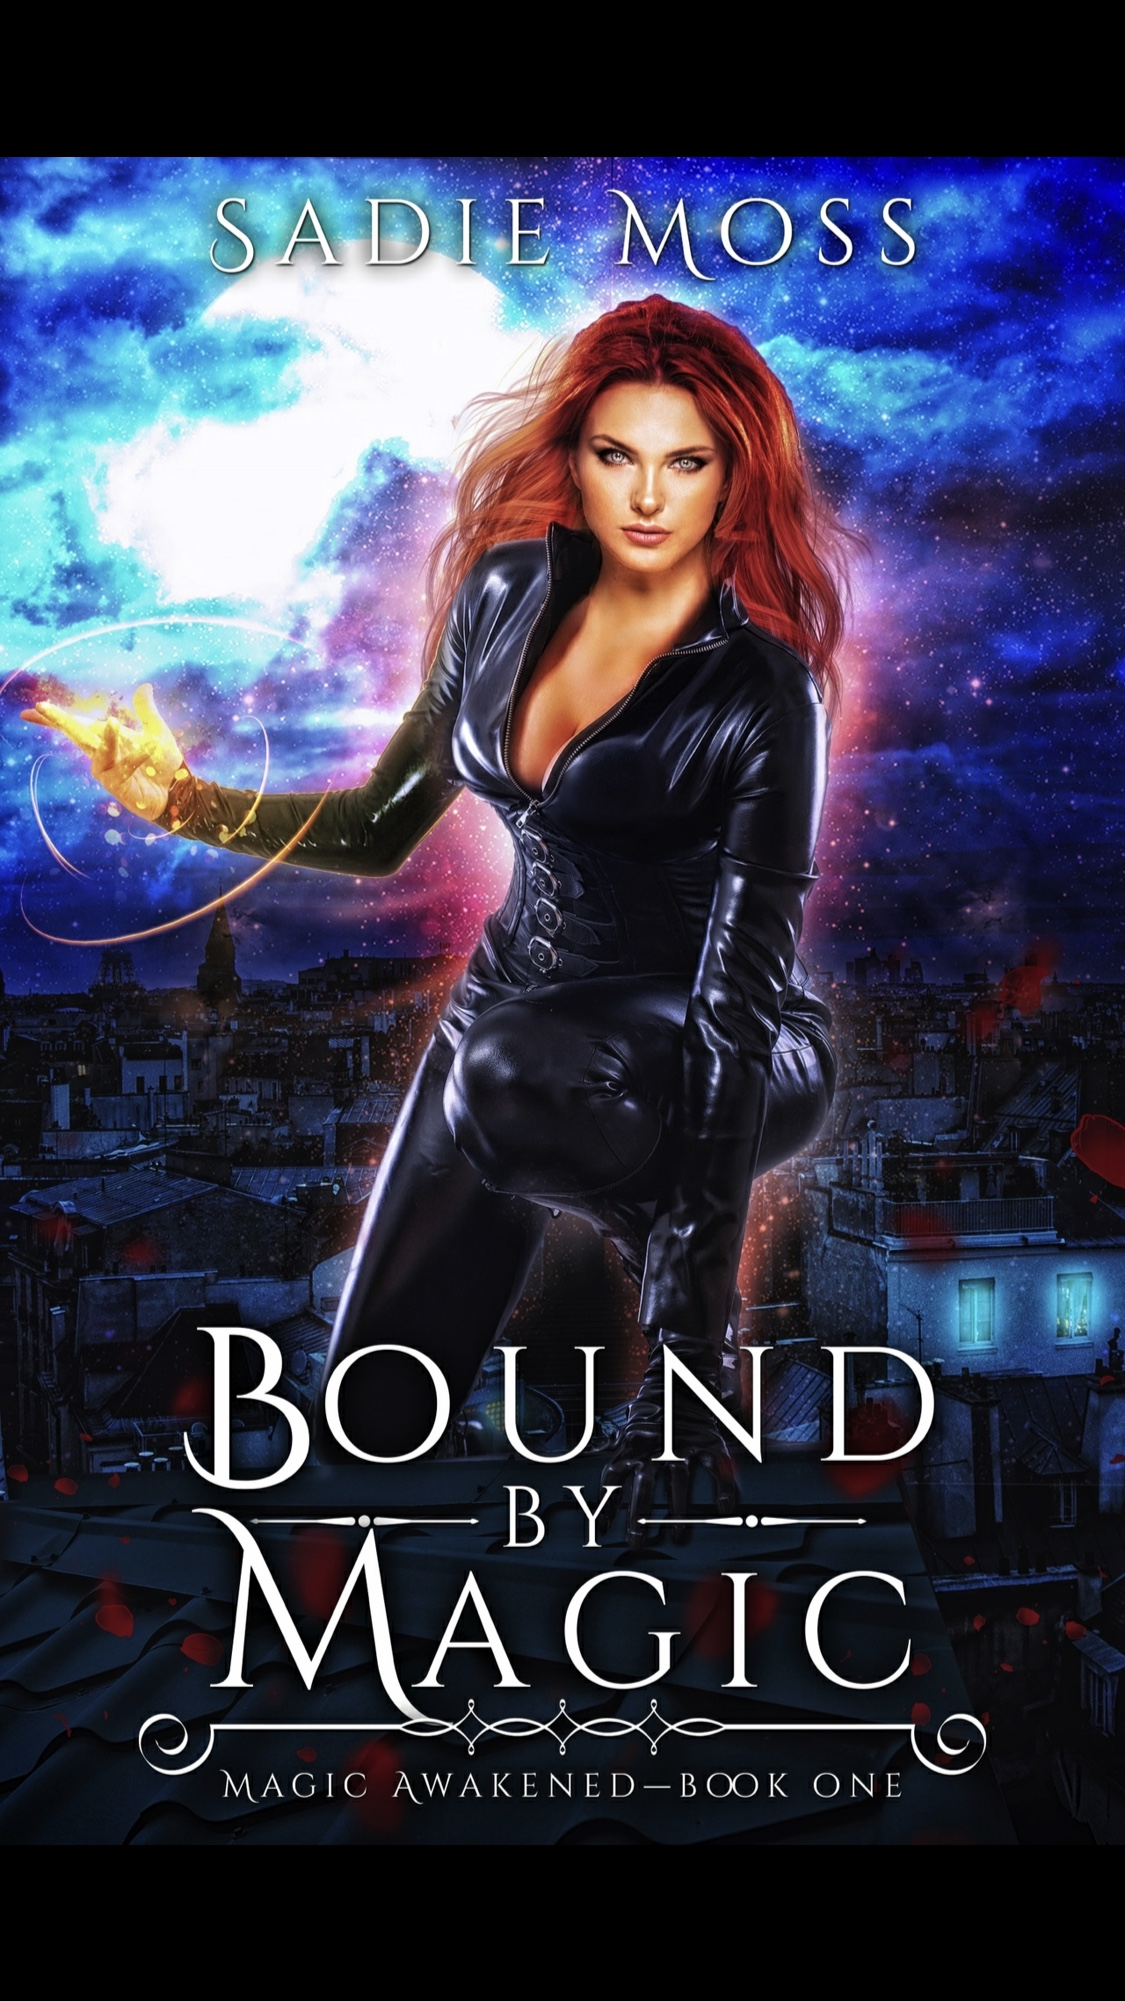 Bound Magic By Sadie Moss - Book Review #Slowburn #PNR #RH #Worthreading #Bookreview